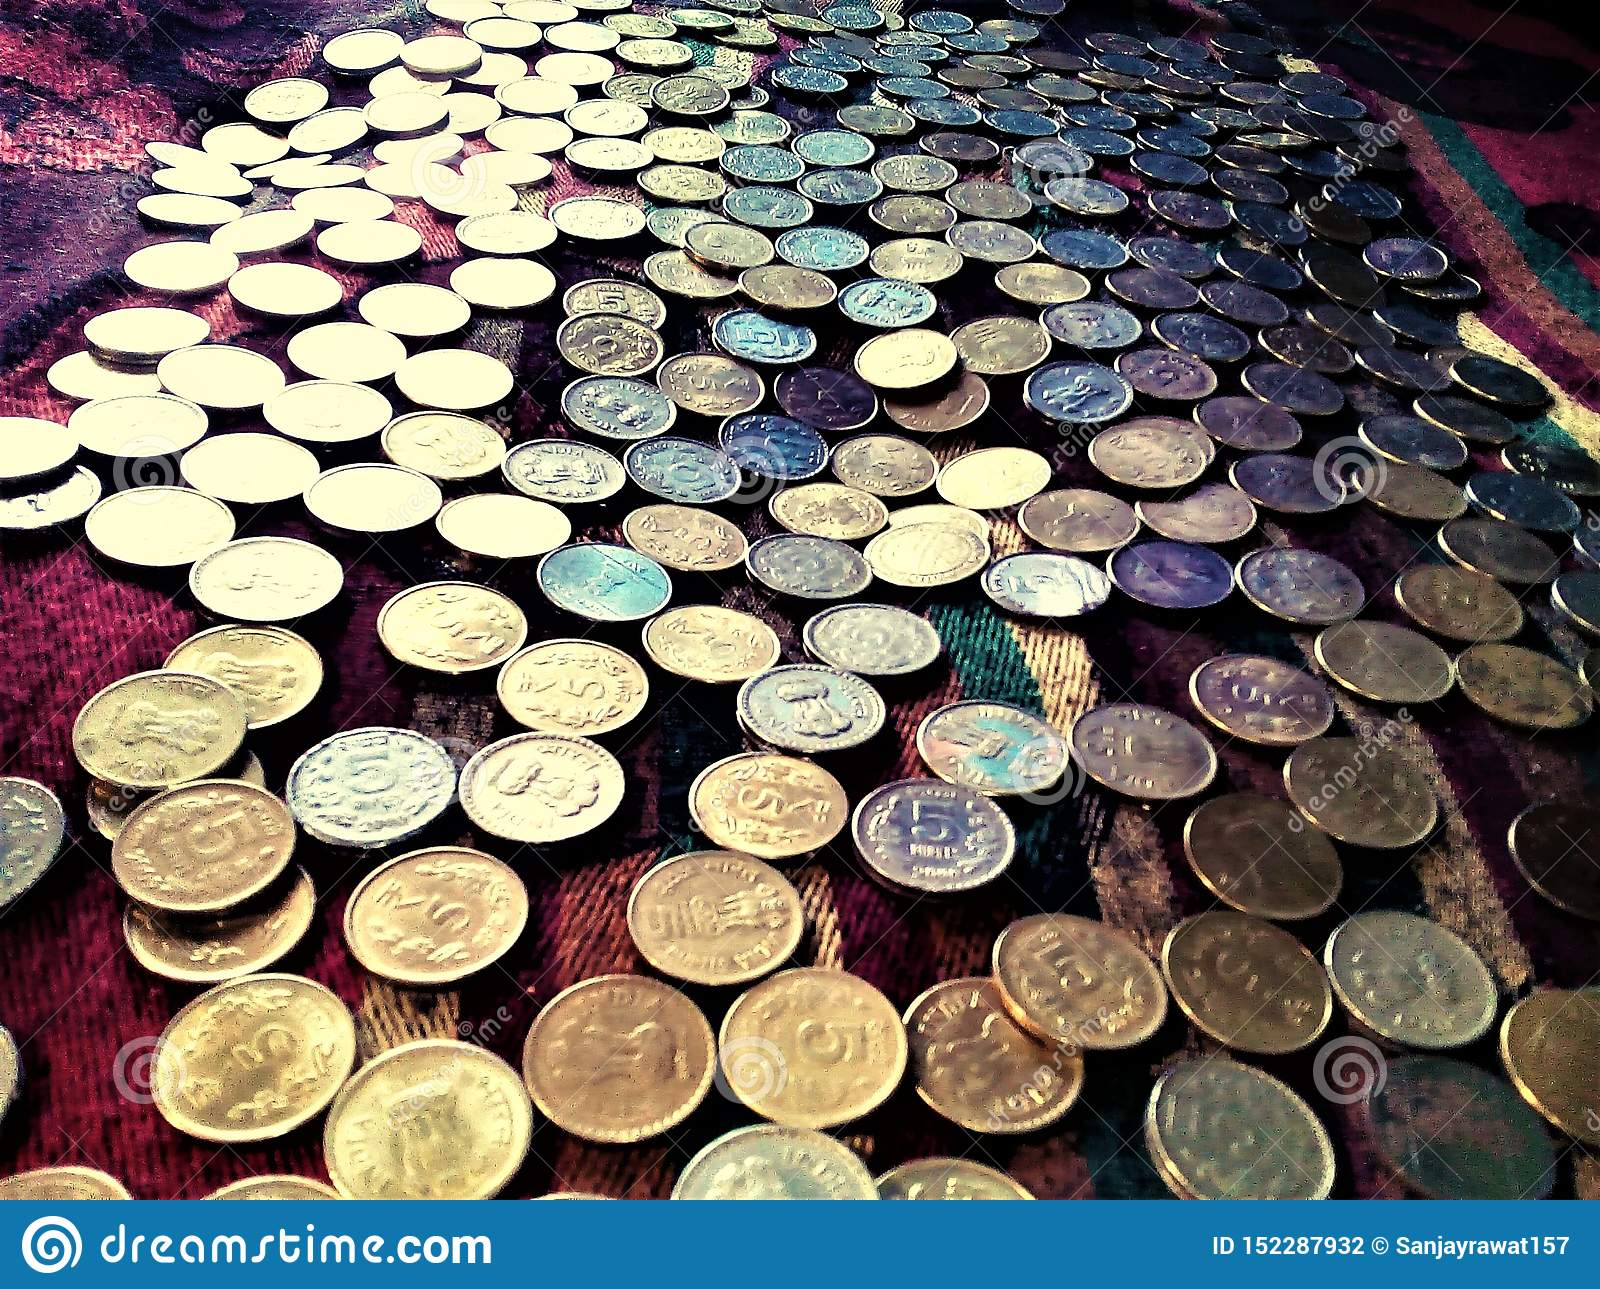 A photo of Lots of Coins